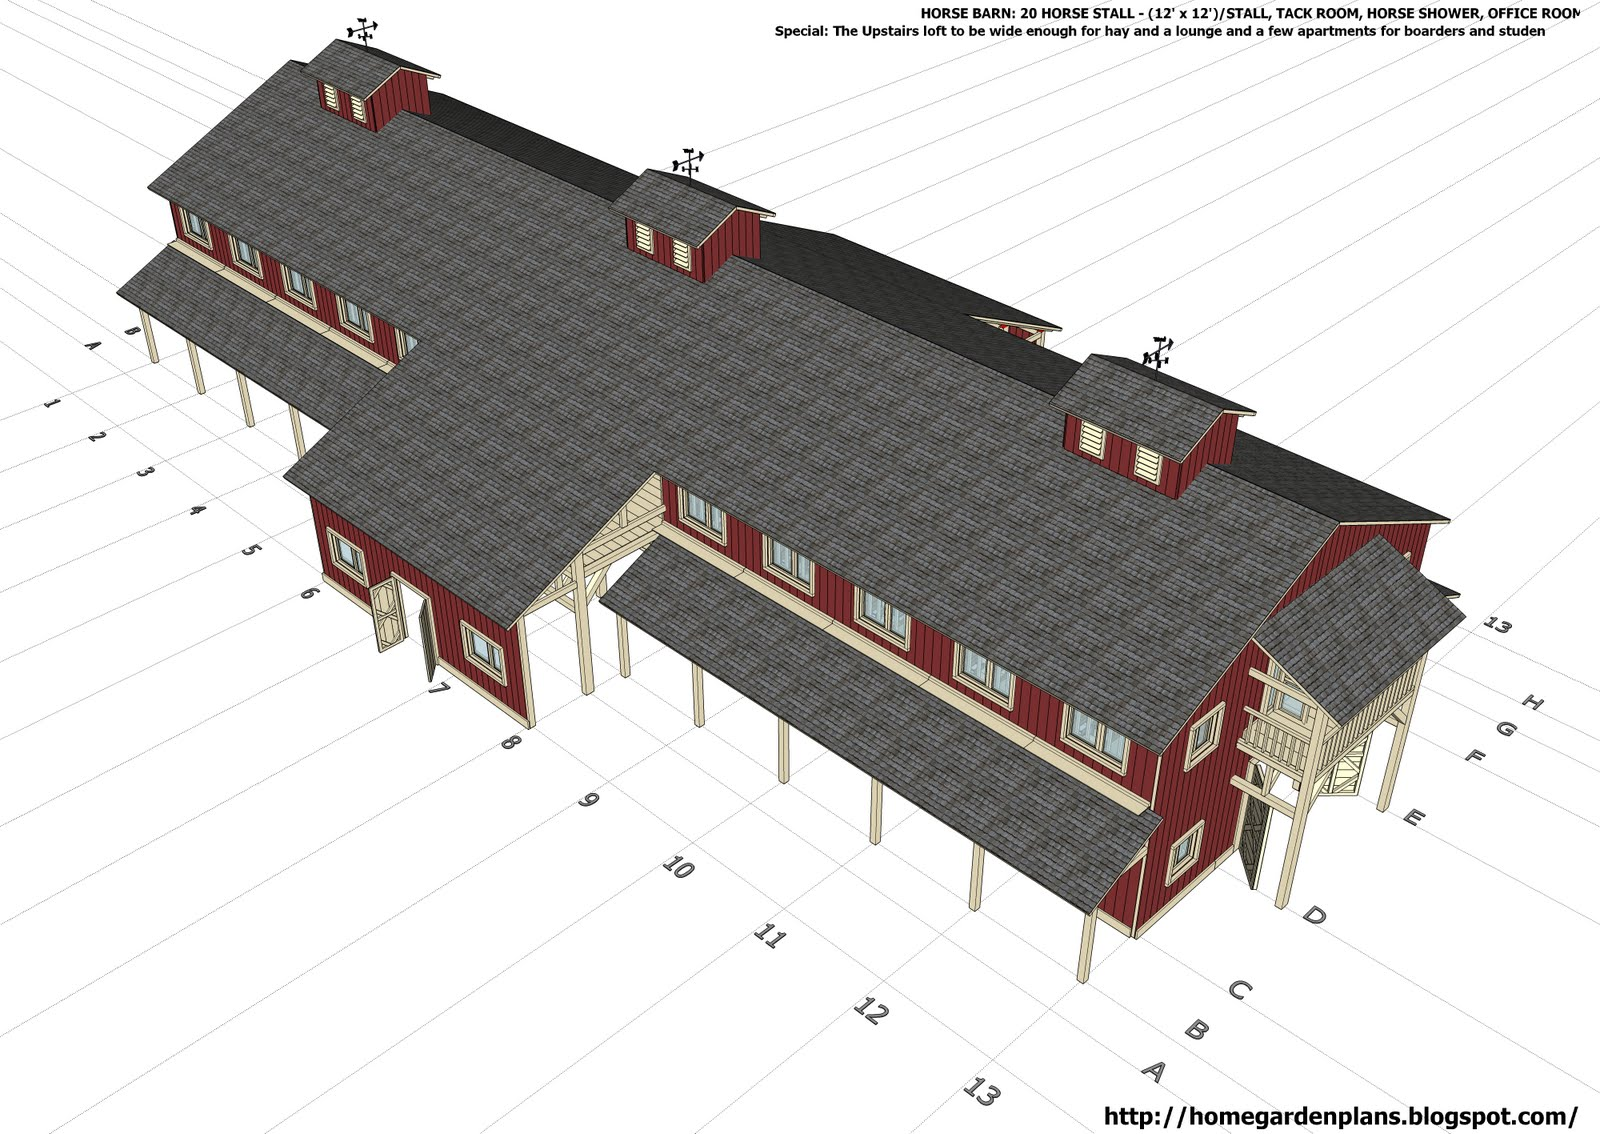 home garden plans: H20B1 - 20 Stall Horse Barn Plans - Large Horse ...